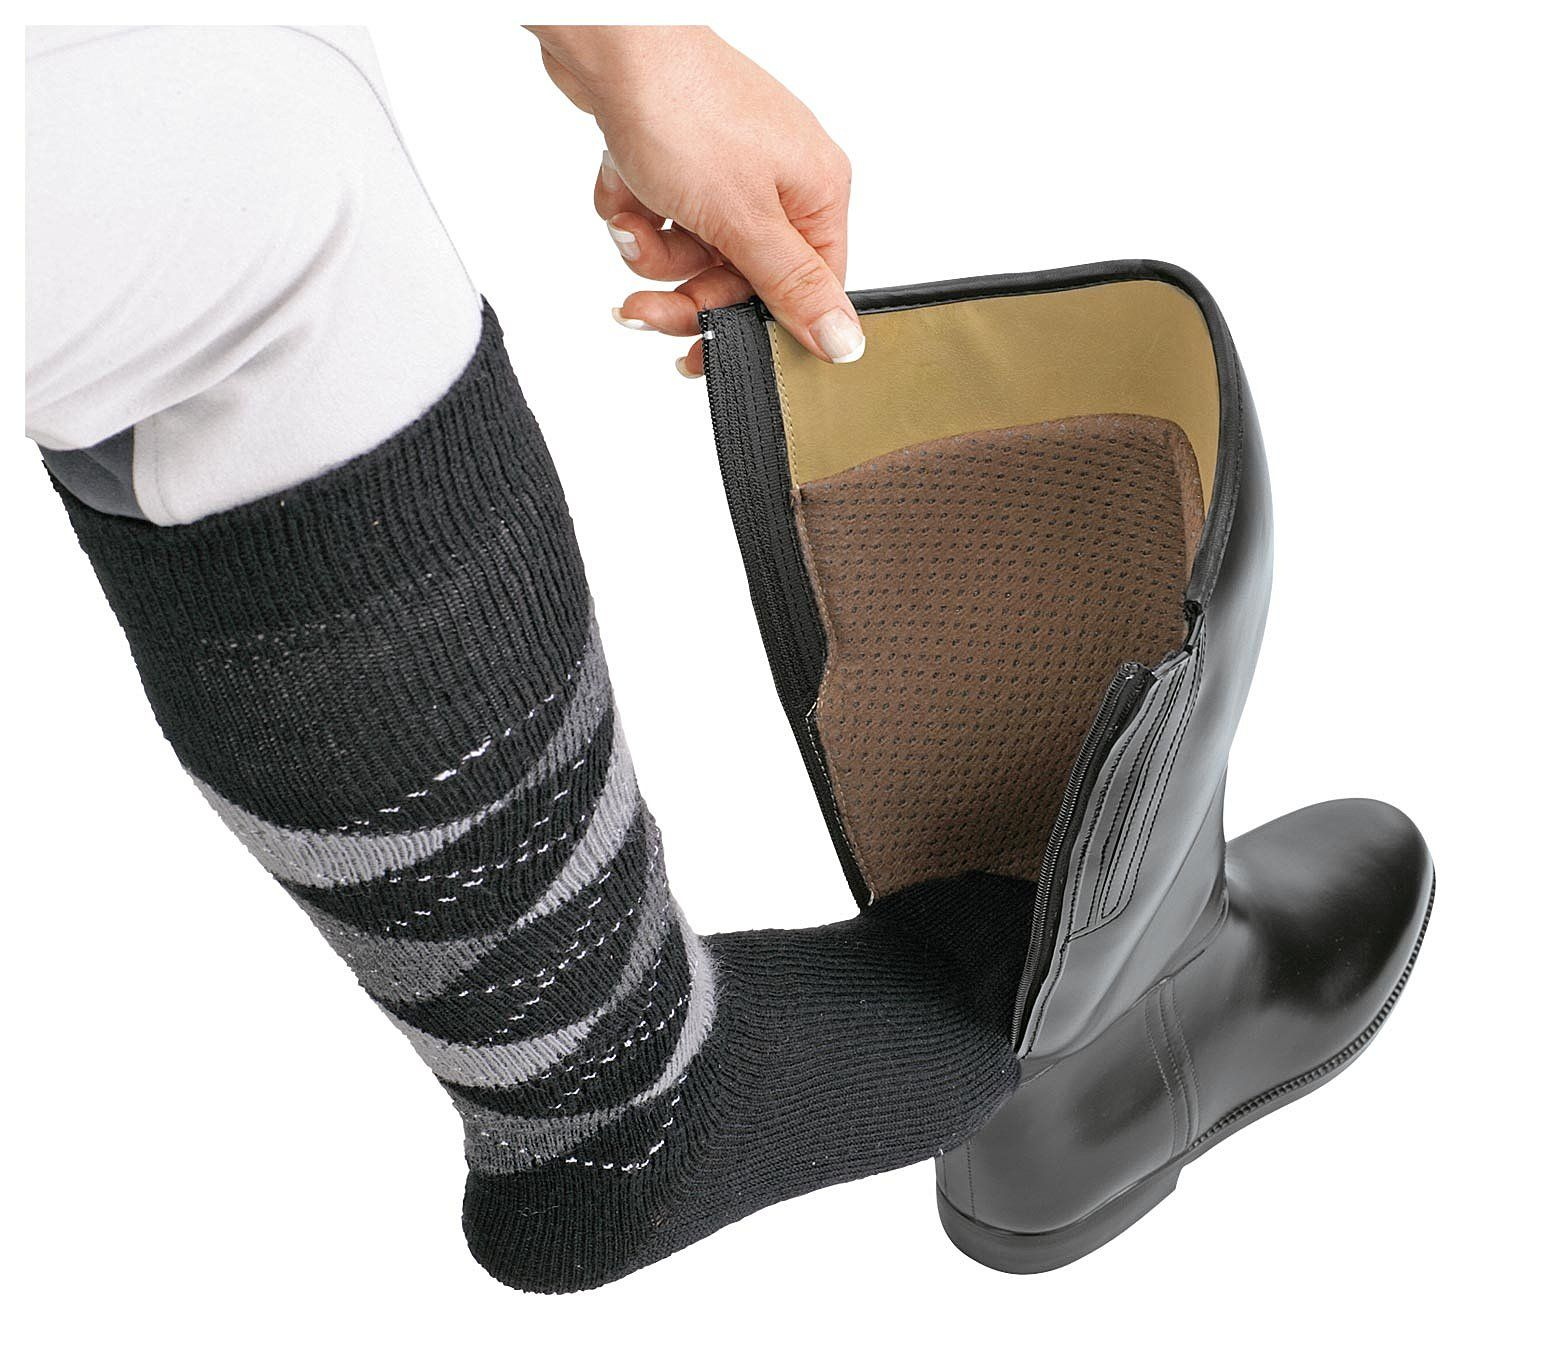 Reitstiefel Flexible | Burlington Socks at daily occasions